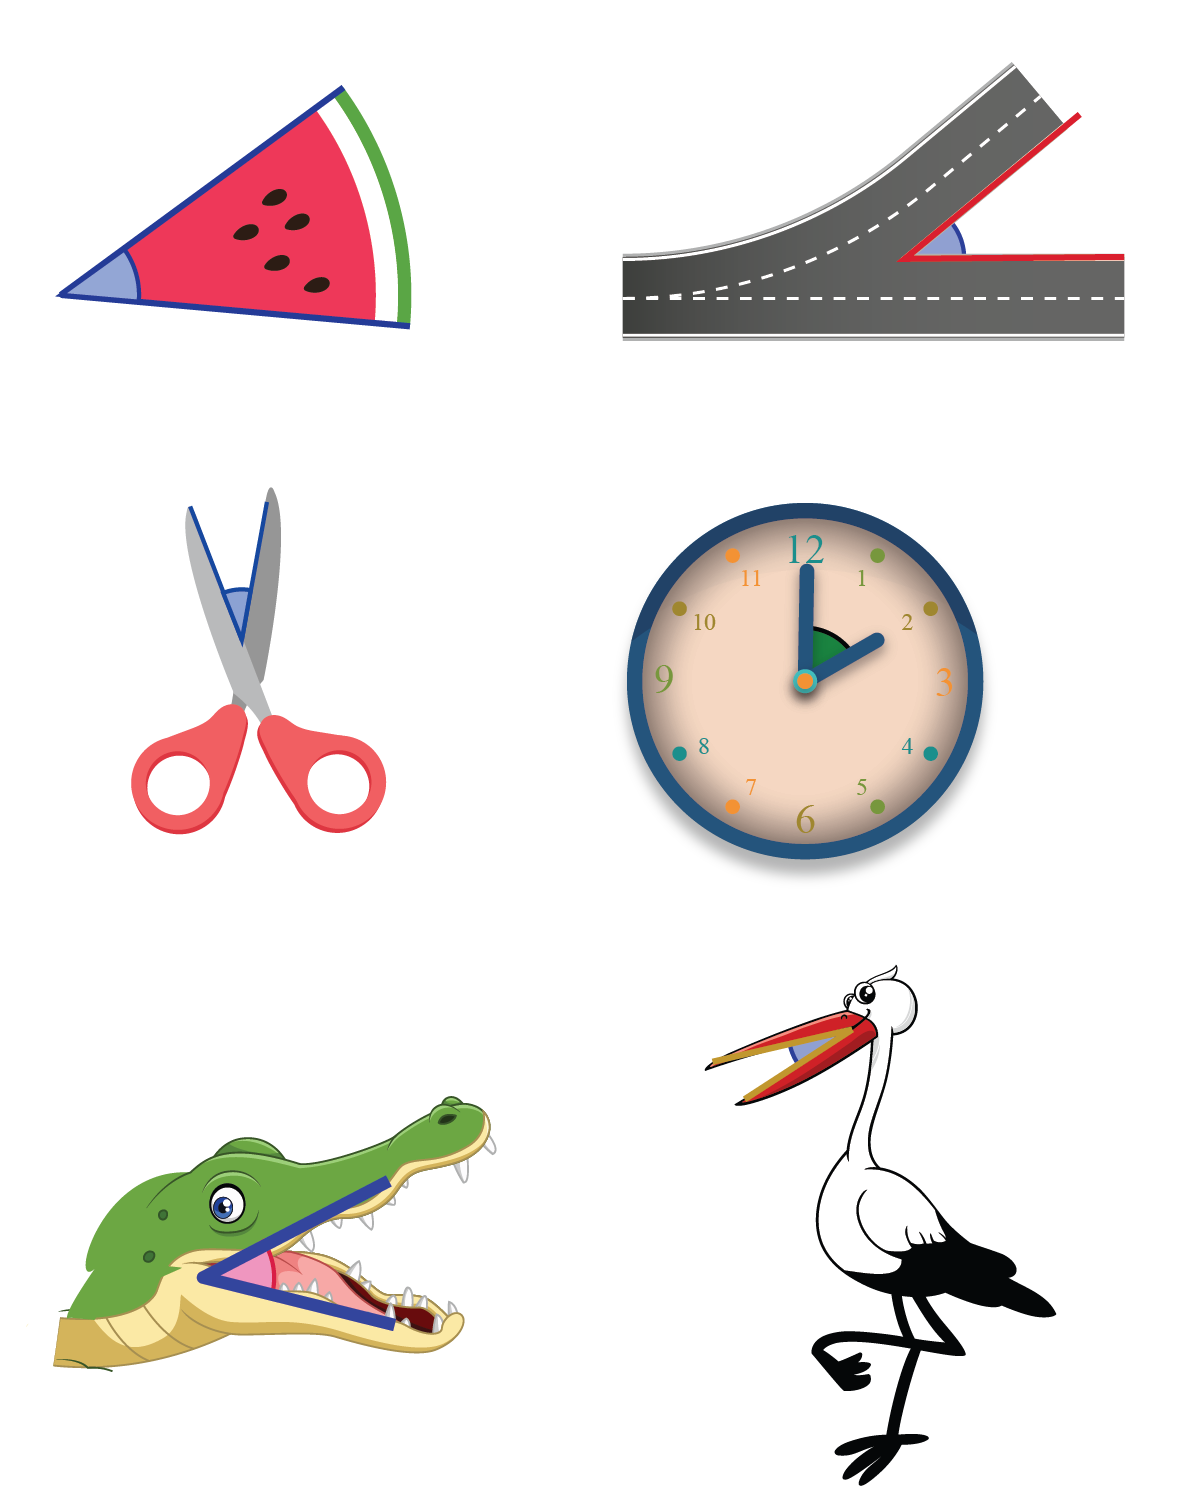 Acute angle real life examples such as a slice of watermelon, a crocodile mouth, a bird's open beak, an open pair of scissors and so on.